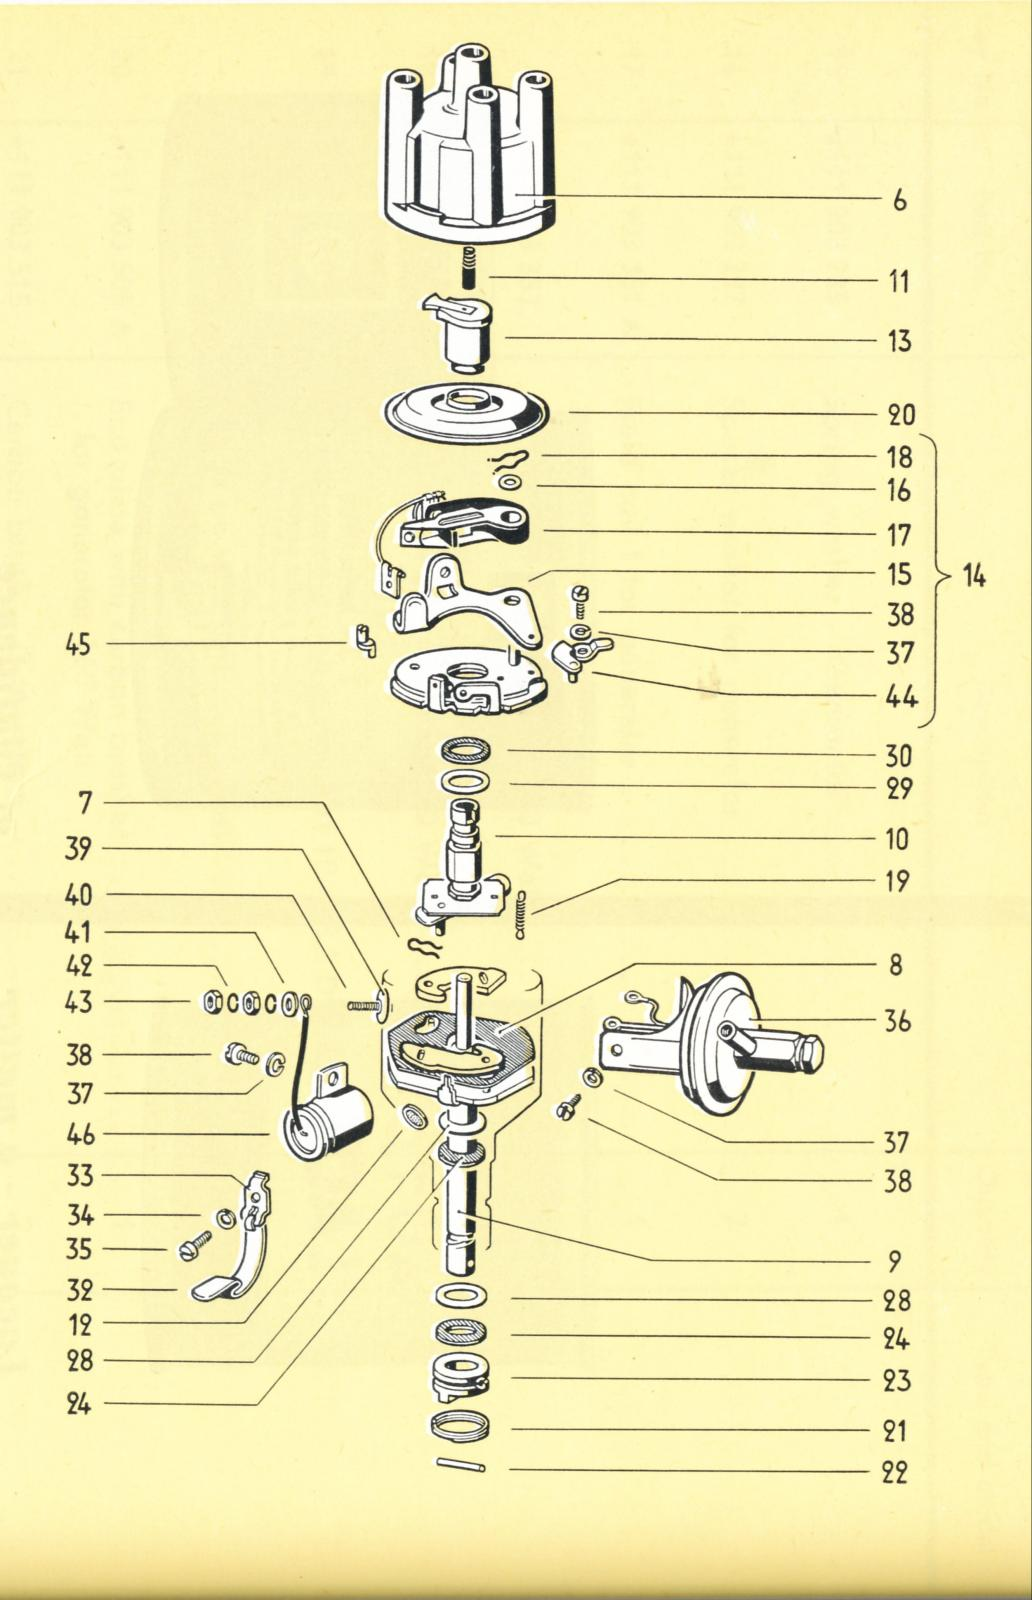 hight resolution of vw distributor diagram wiring diagram third level electronic ignition diagram of a vw beetle vw distributor diagram